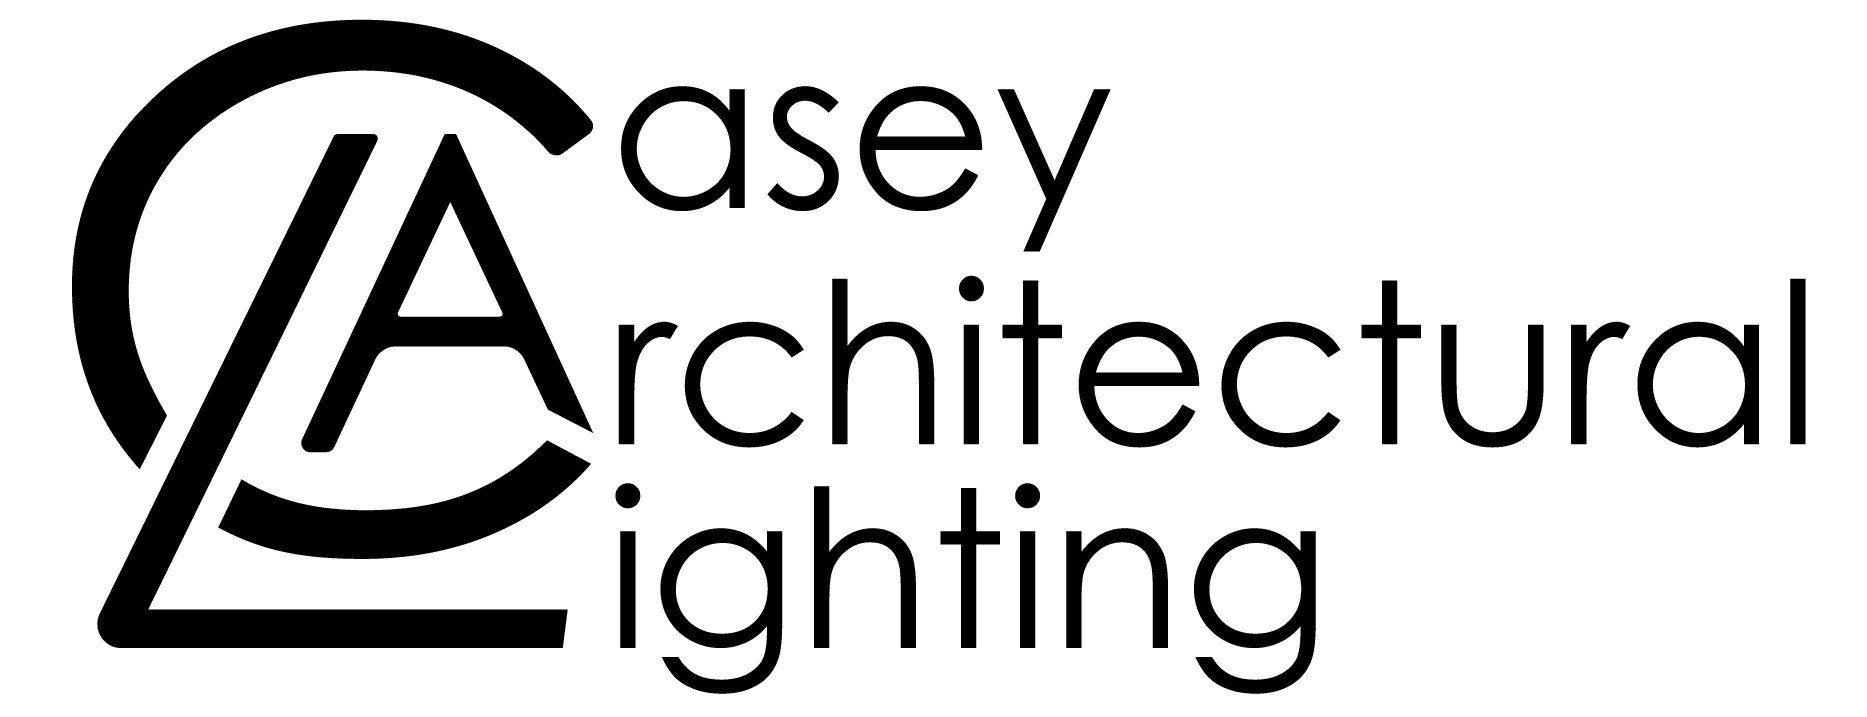 Casey Architectural Lighting